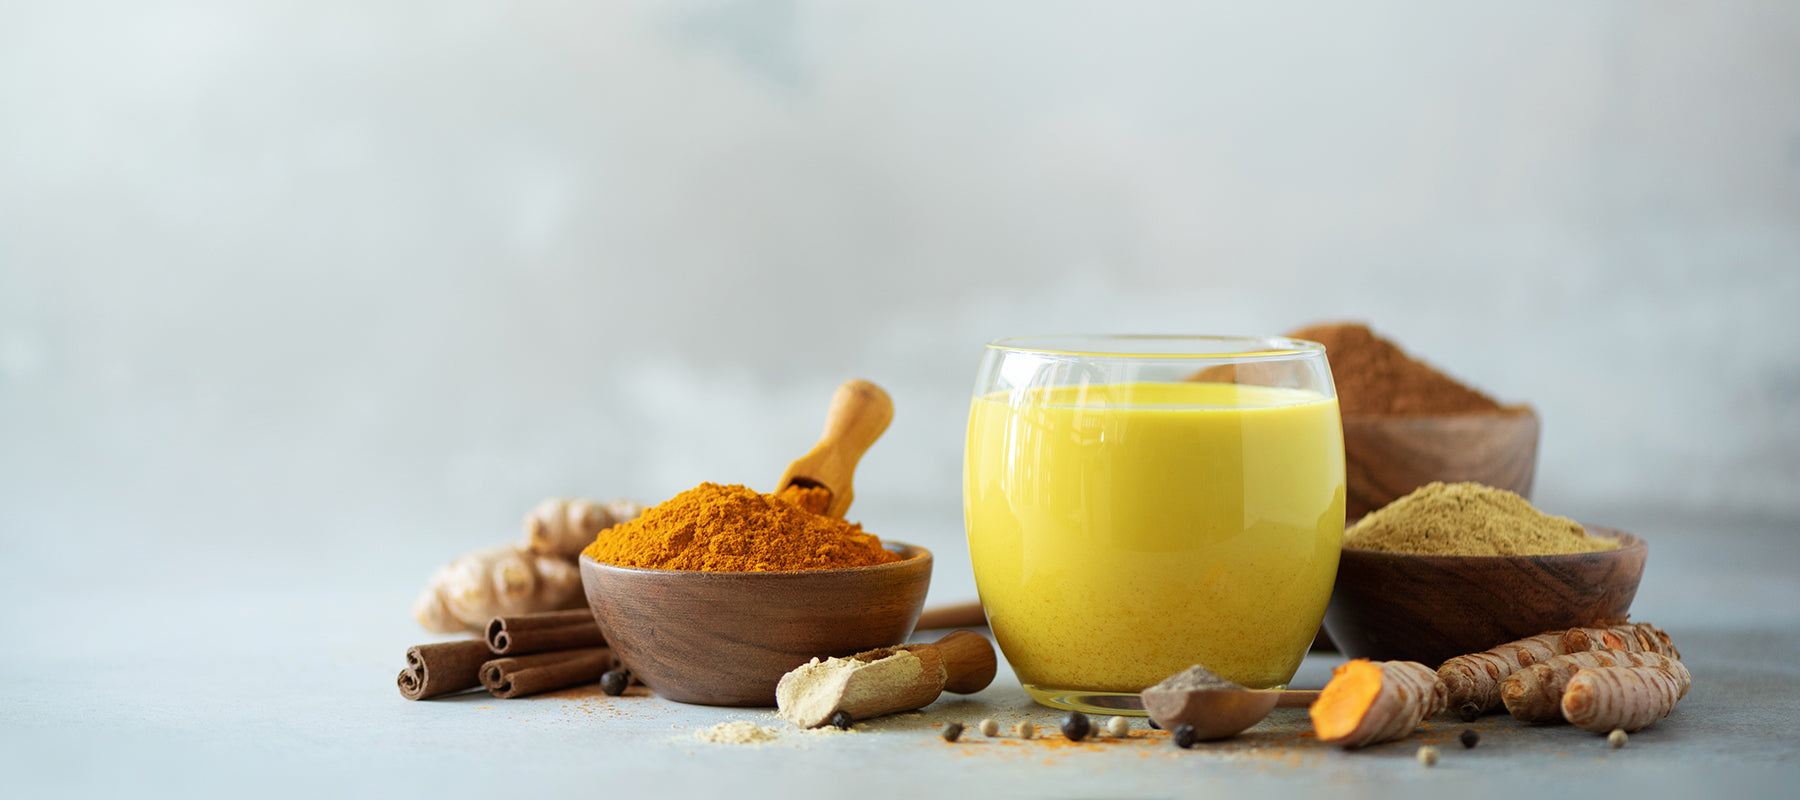 Image of a turmeric latte